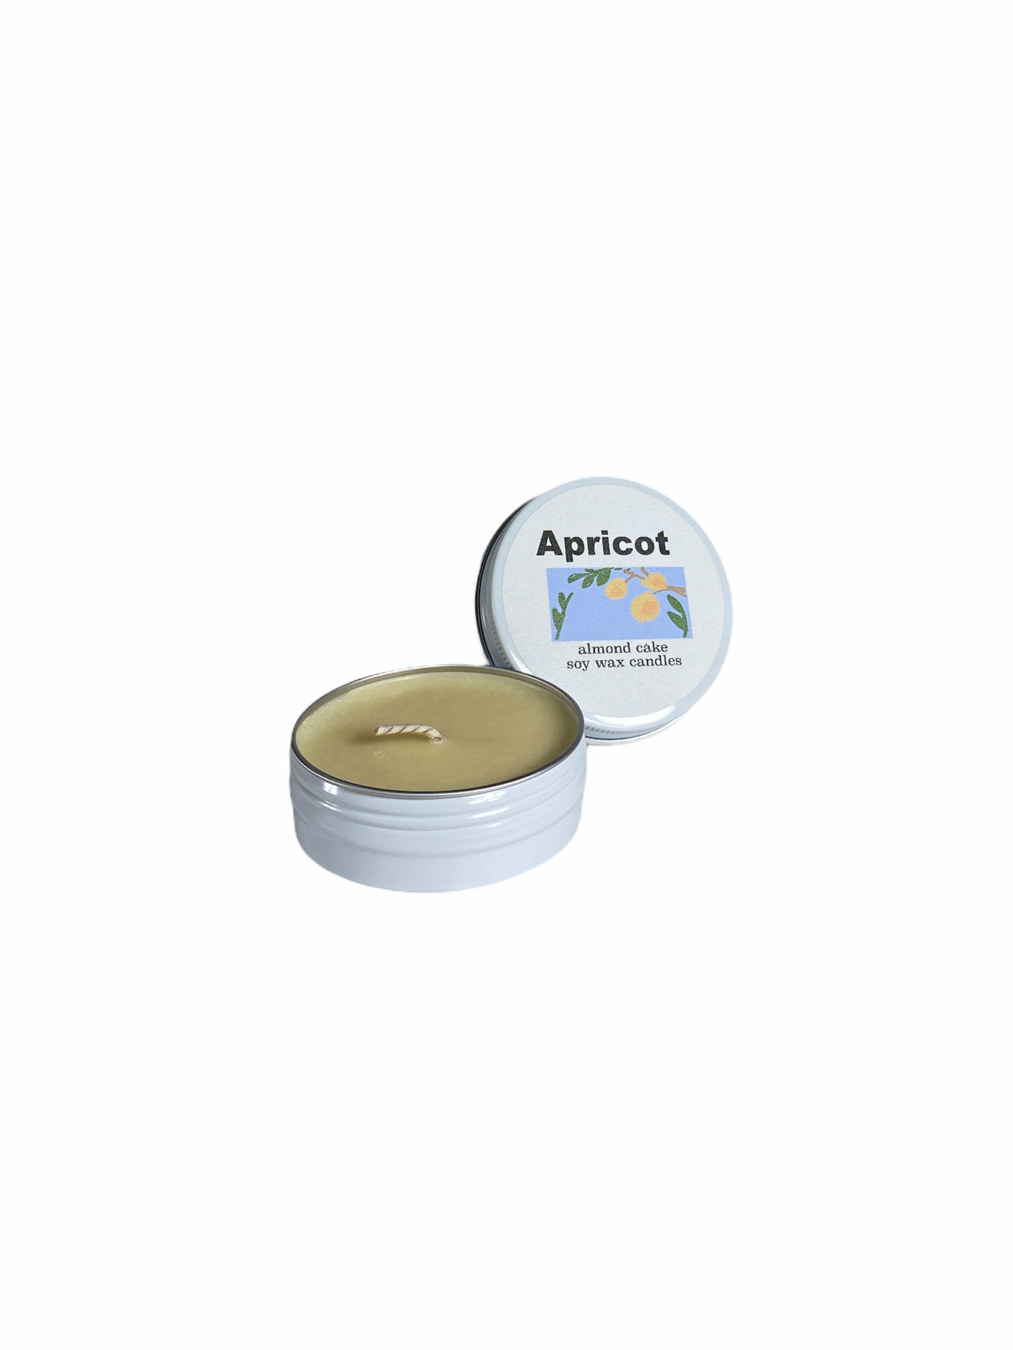 Apricot Almond Cake Soy Wax Candle